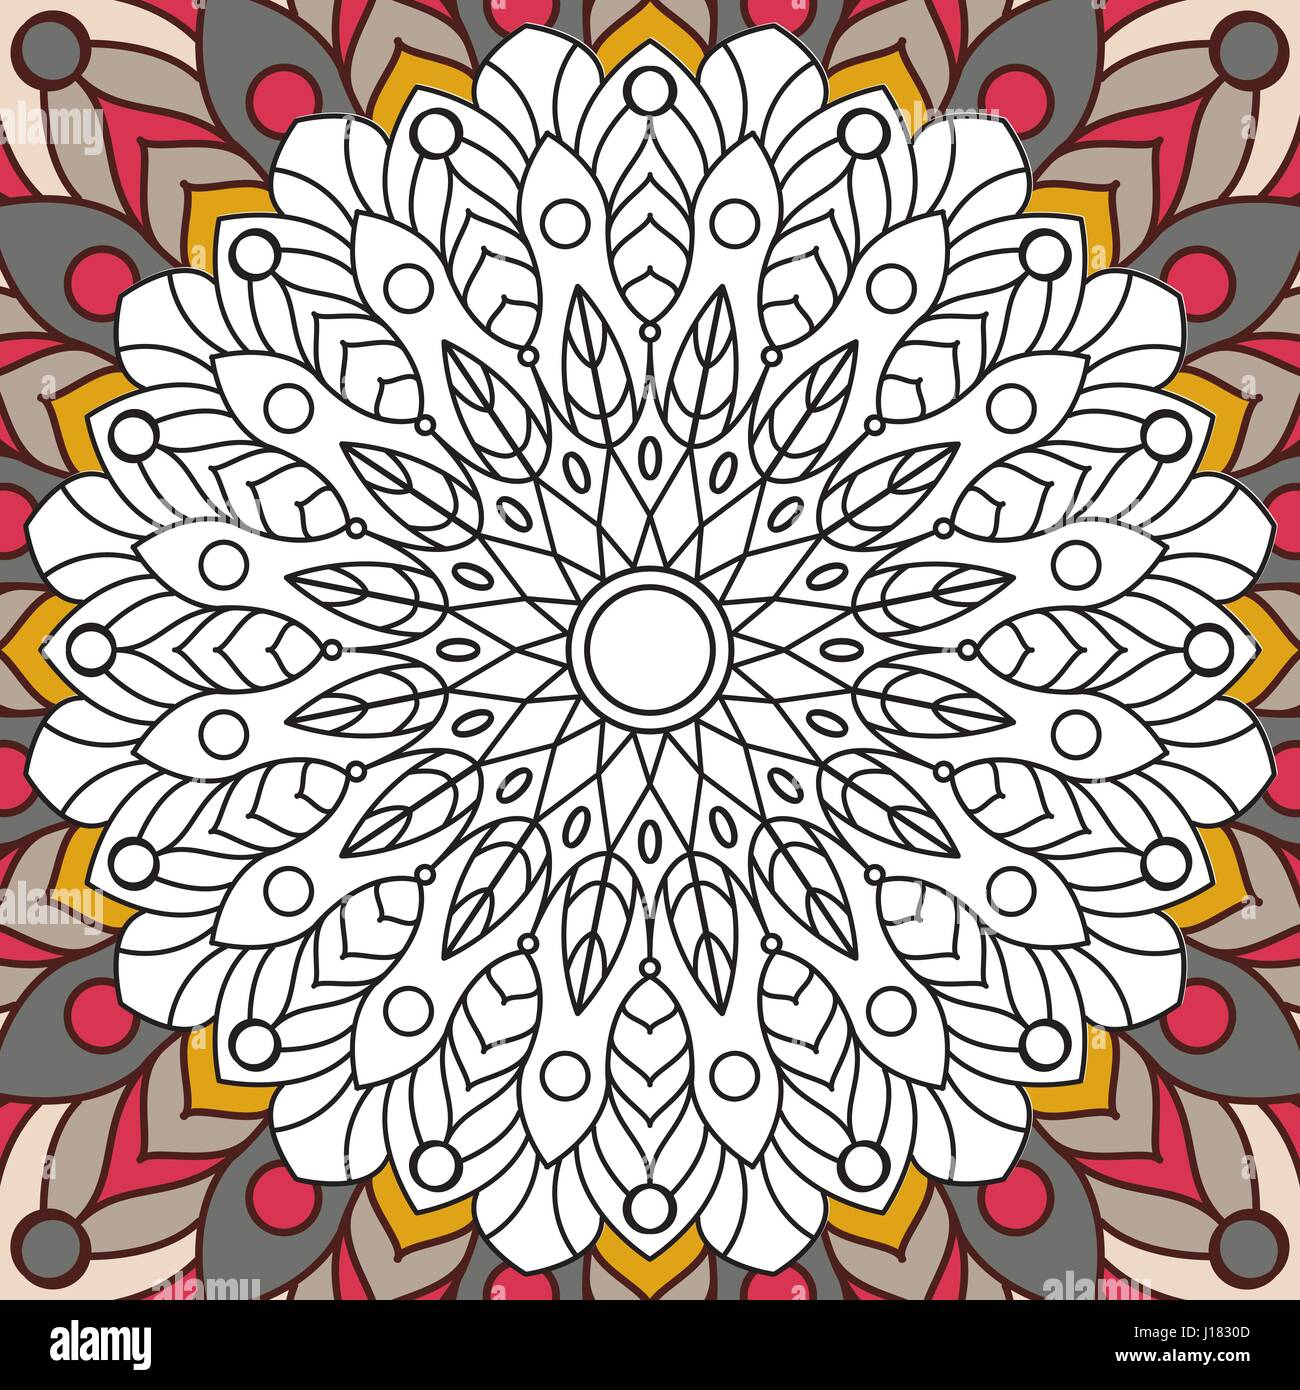 Printable antistress coloring book page for adults - mandala design ...